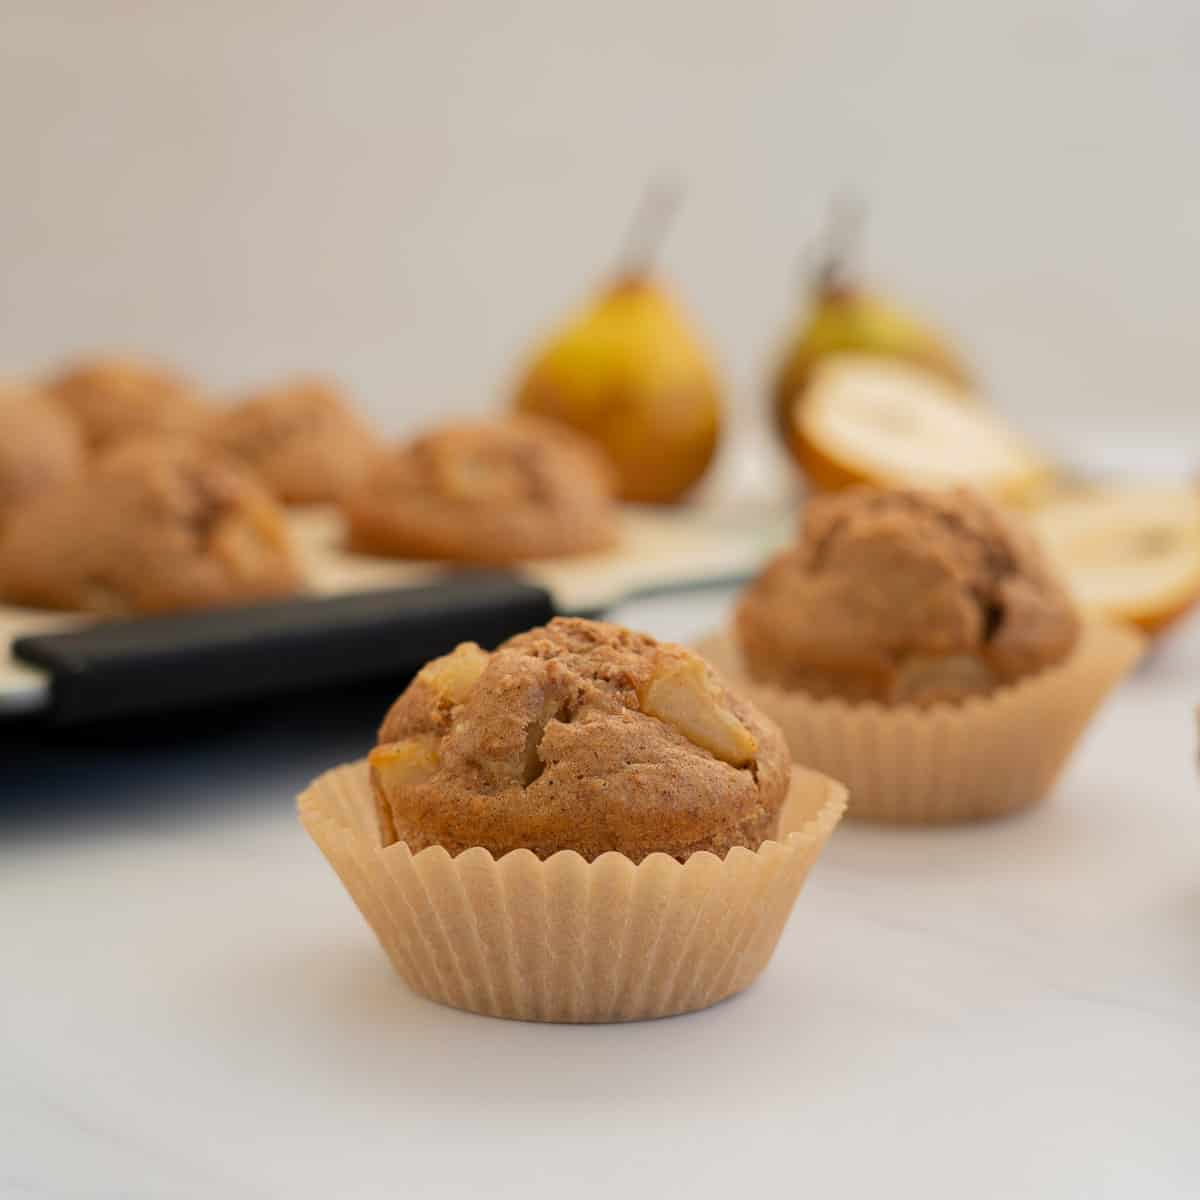 pear muffin in a muffin case on a marble bench top with a sliced pear in the background